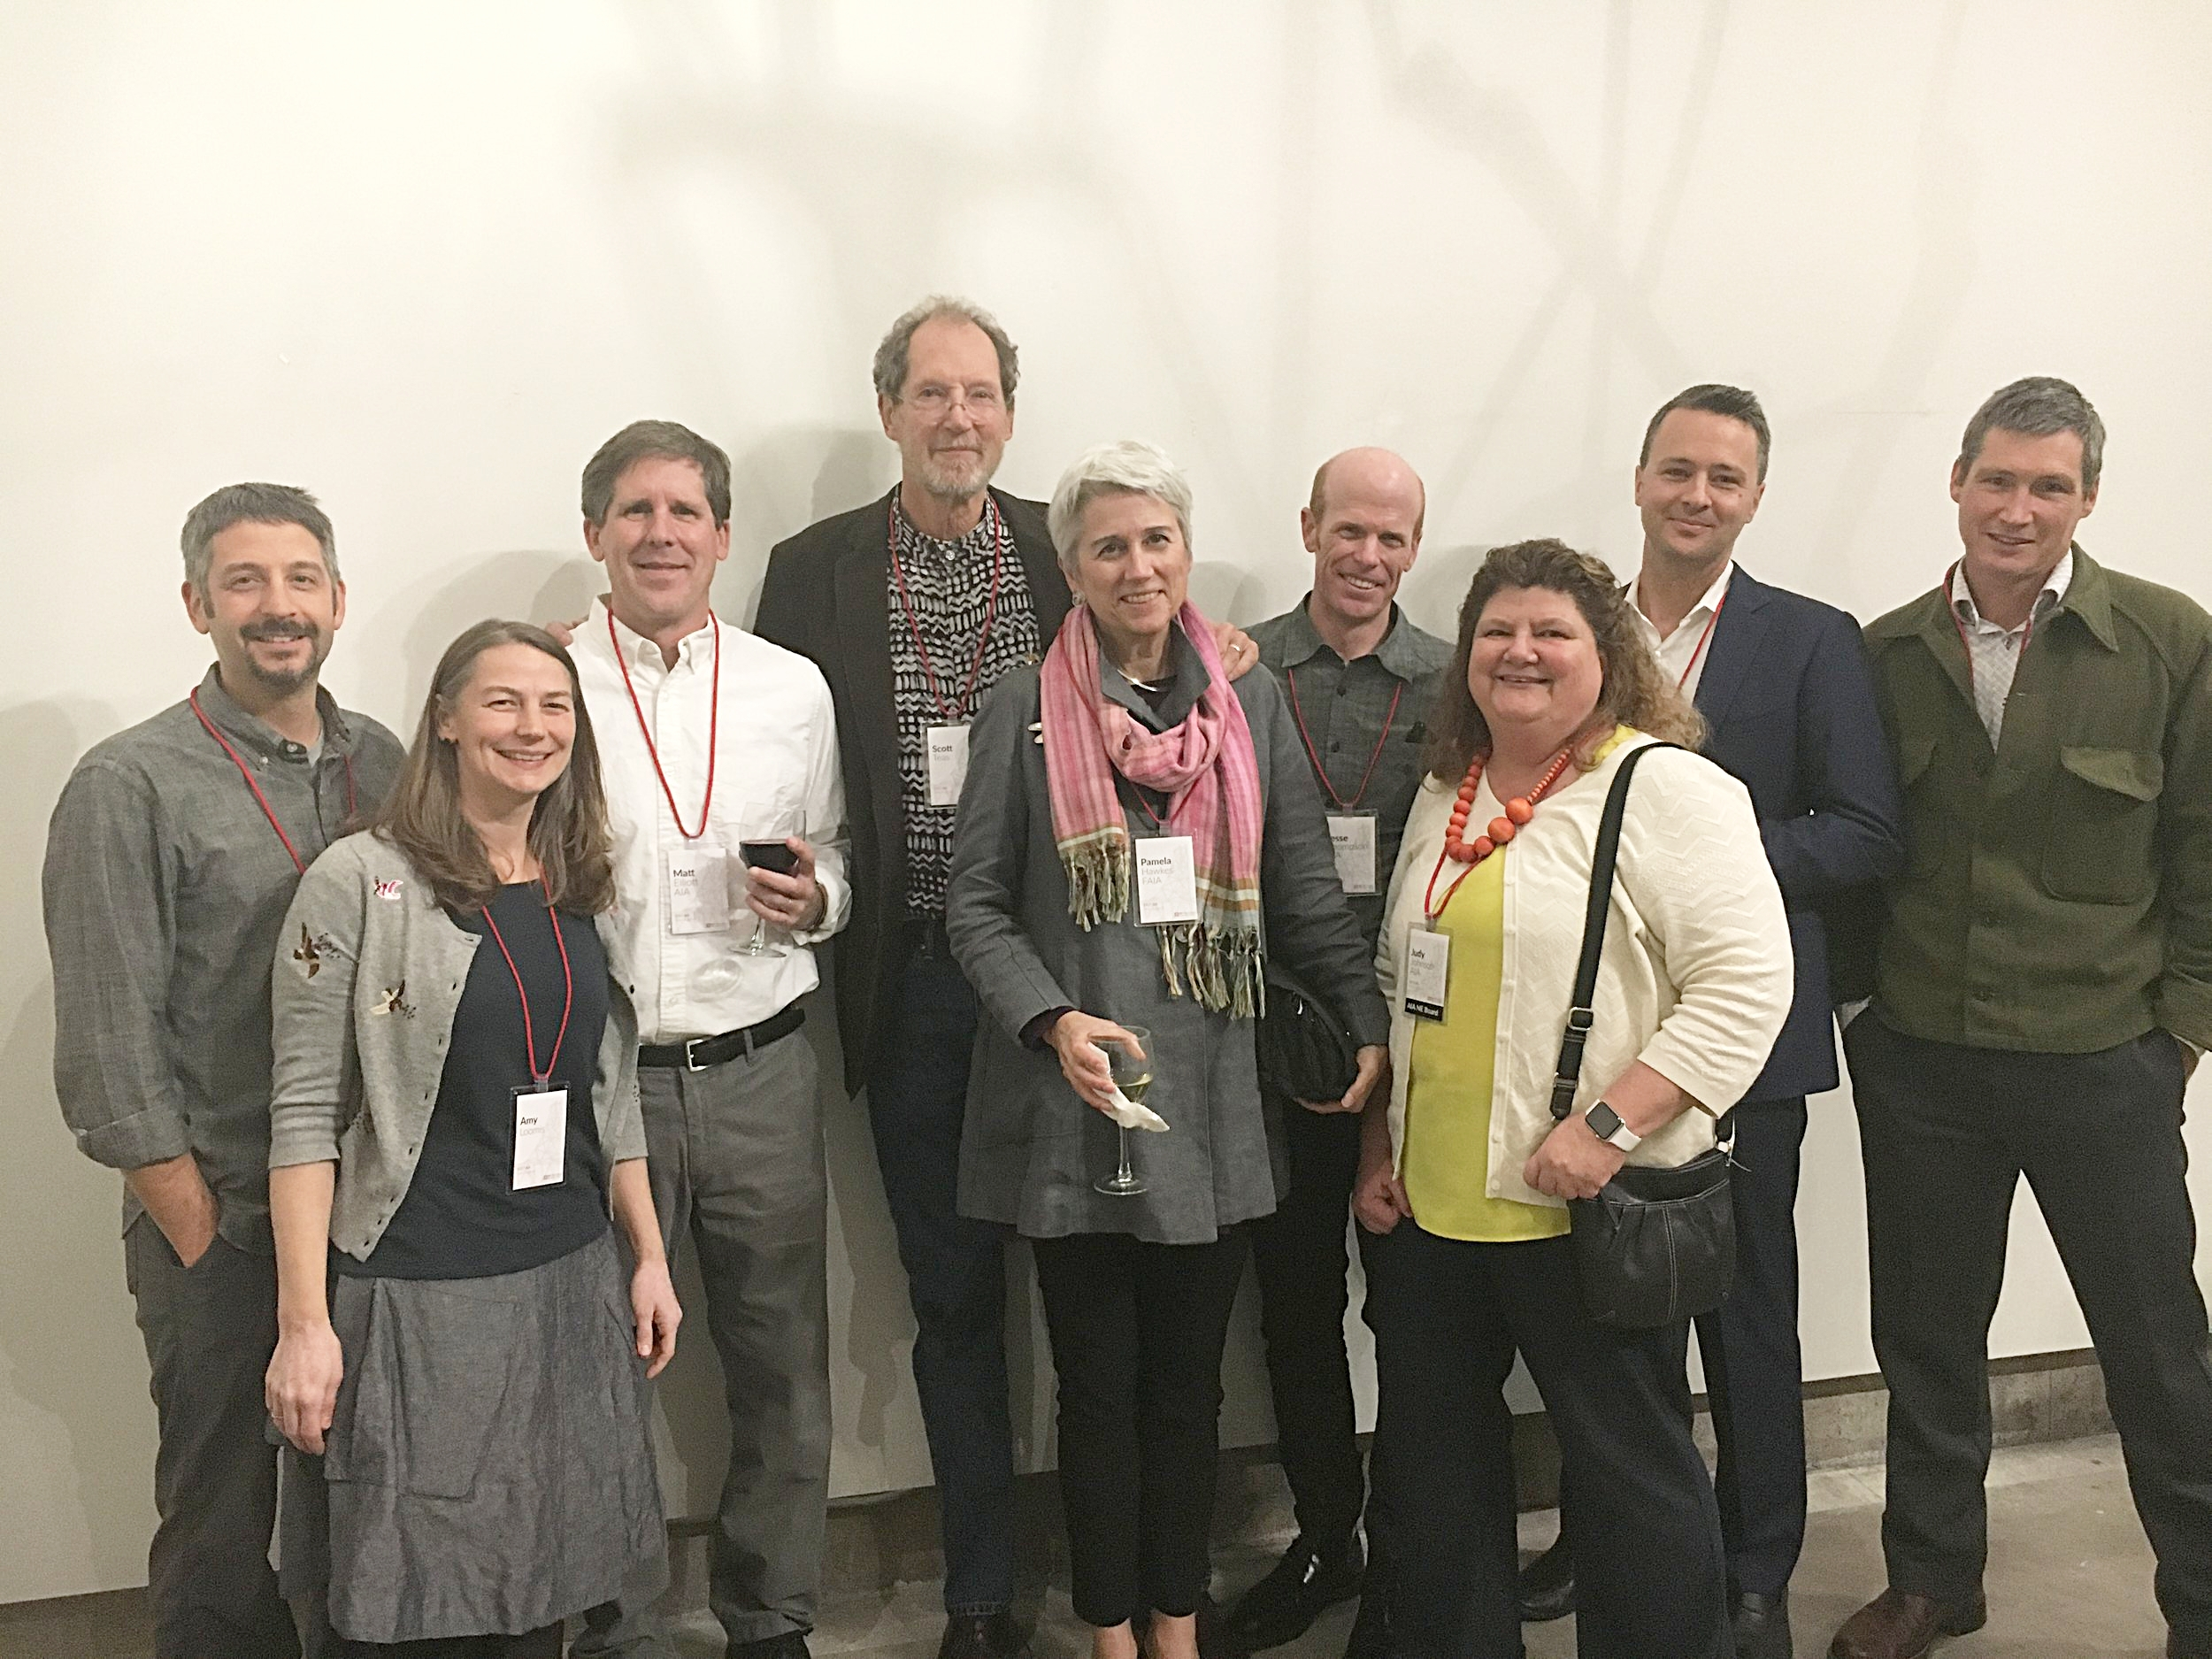 Maine Architects celebrate at the 2017 AIA New England Award program.  From left to right: JT Loomis, Amy Loomis, Matt Elliott, T. Scott Teas, Pamela Hawkes, Jesse Thompson, Judy Johnson, Matthew O'Malia, and Riley Pratt.